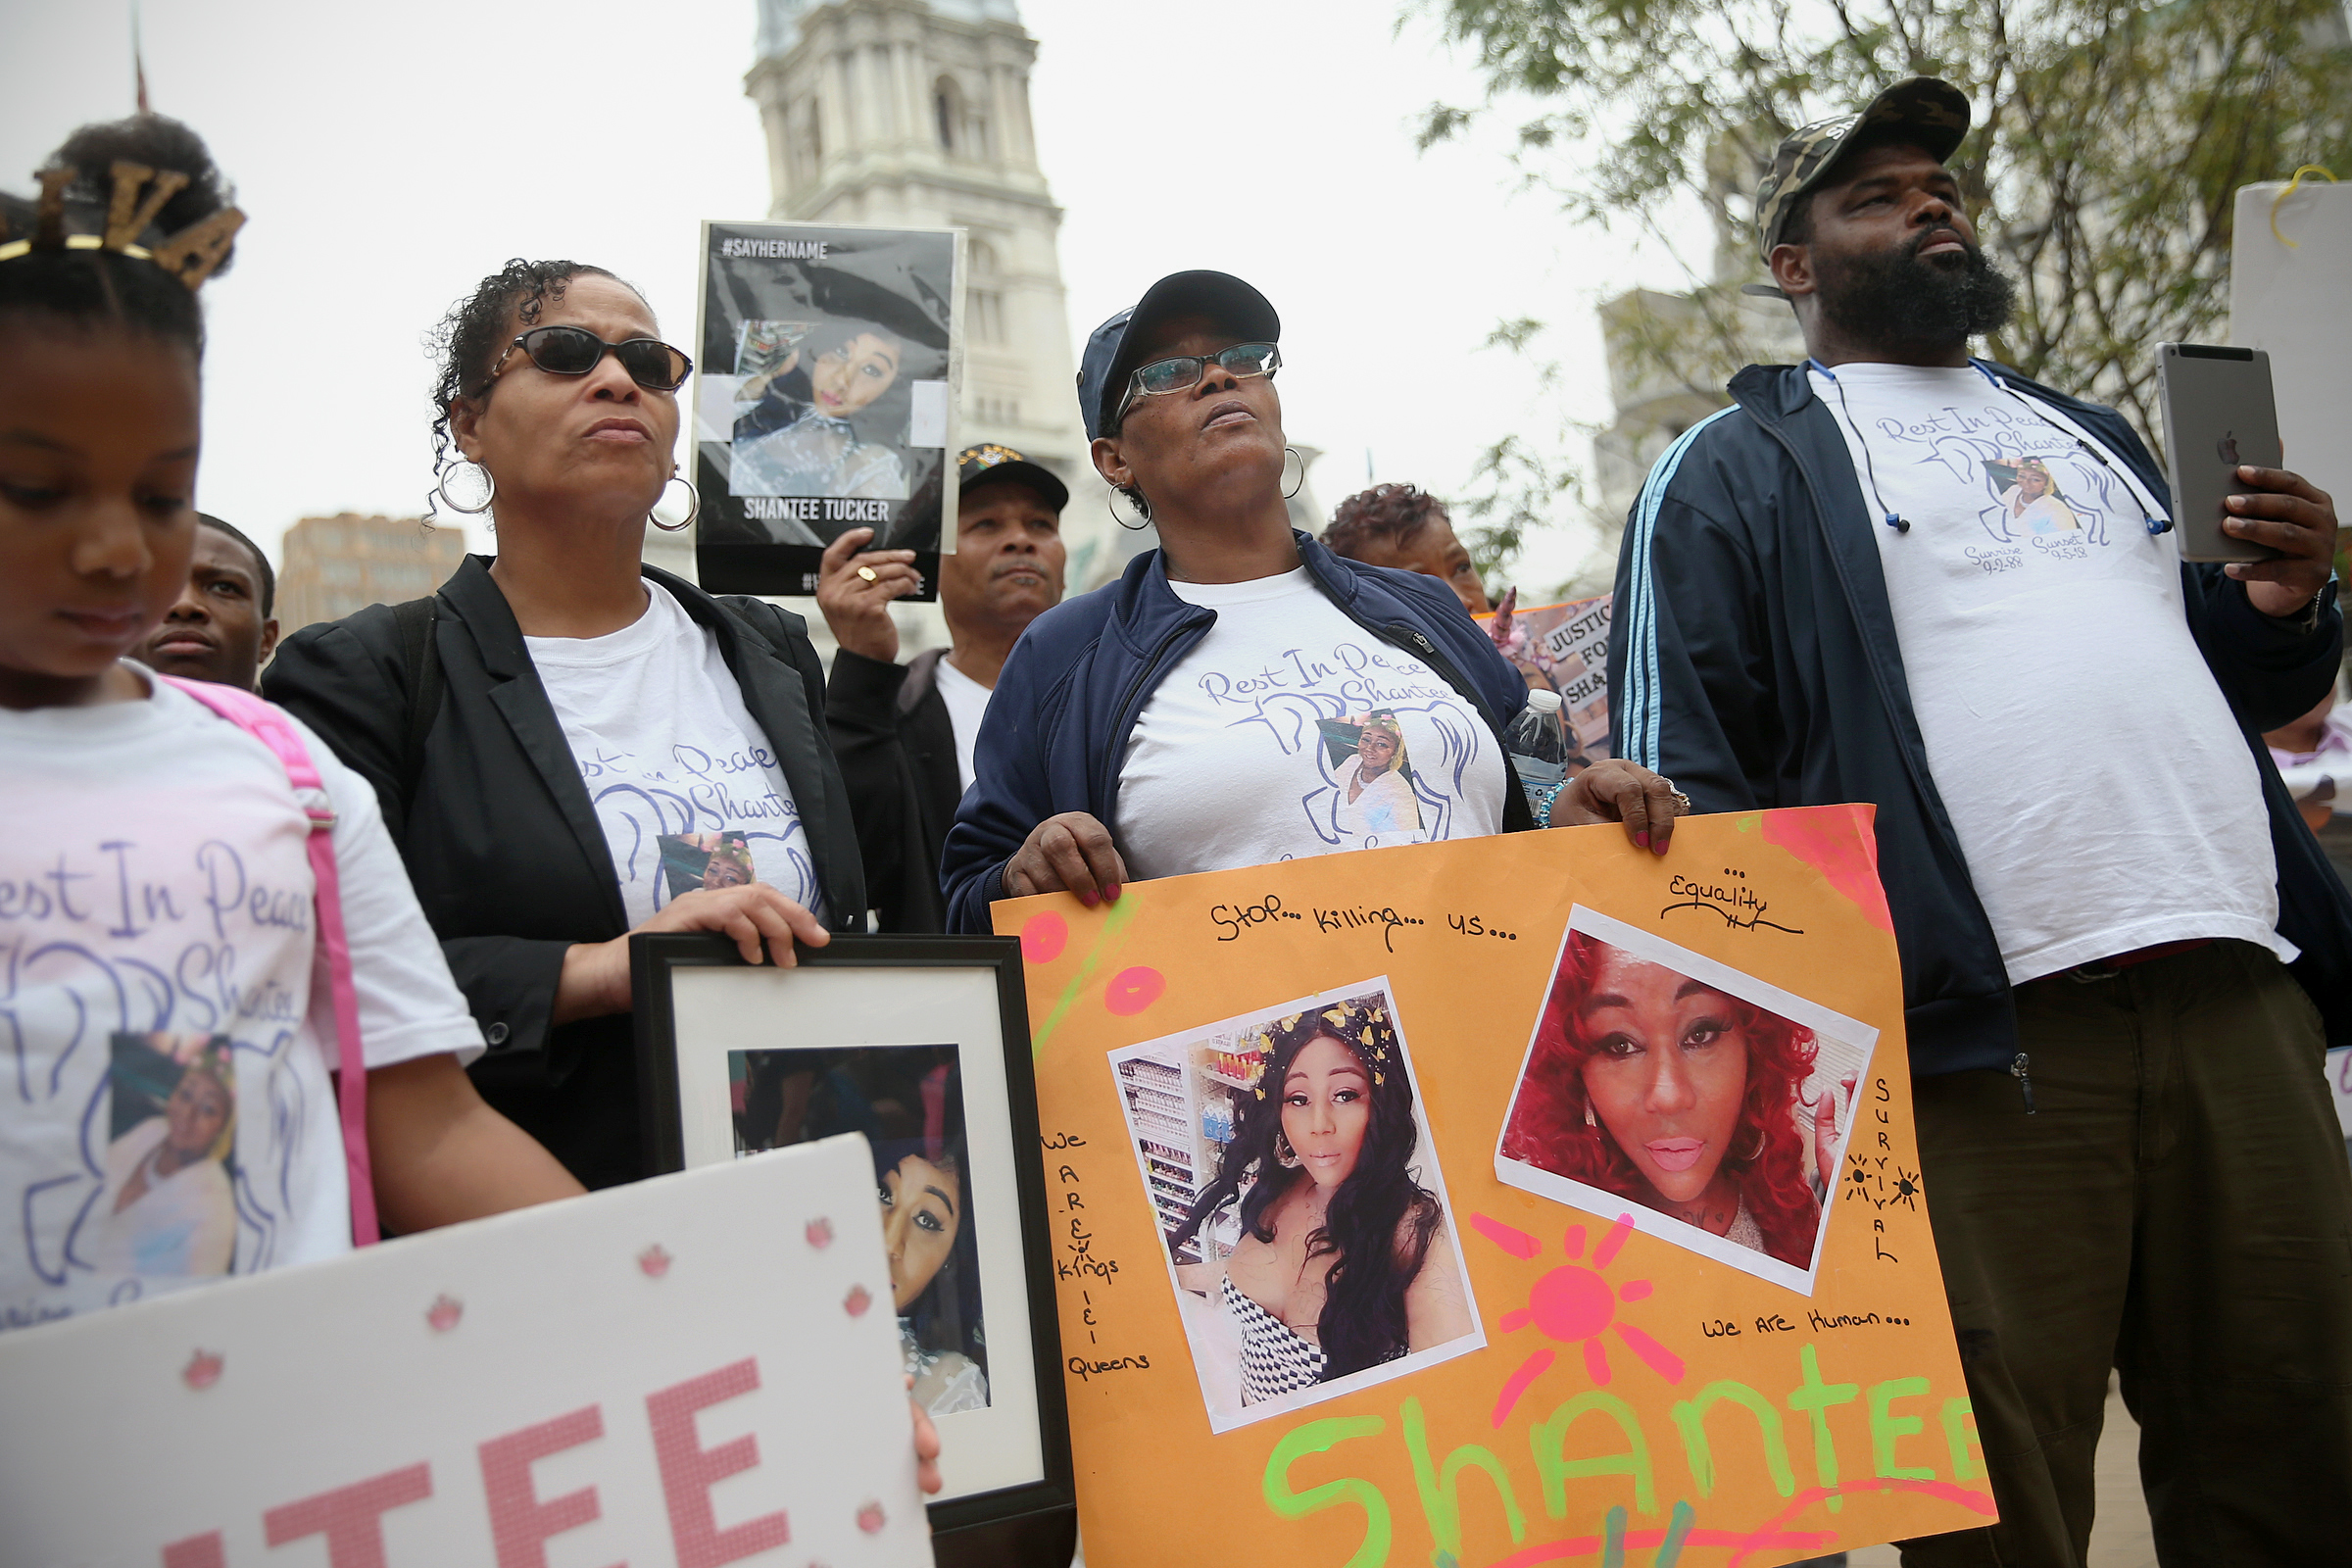 Wanda Bibbs, mother of Shantee Tucker, second from right, holds a poster in remembrance of Tucker during the eighth annual Philly Trans March at Love Park in Center City Philadelphia on Saturday, Oct. 6, 2018. Tucker was a trans woman killed near Hunting Park in September.